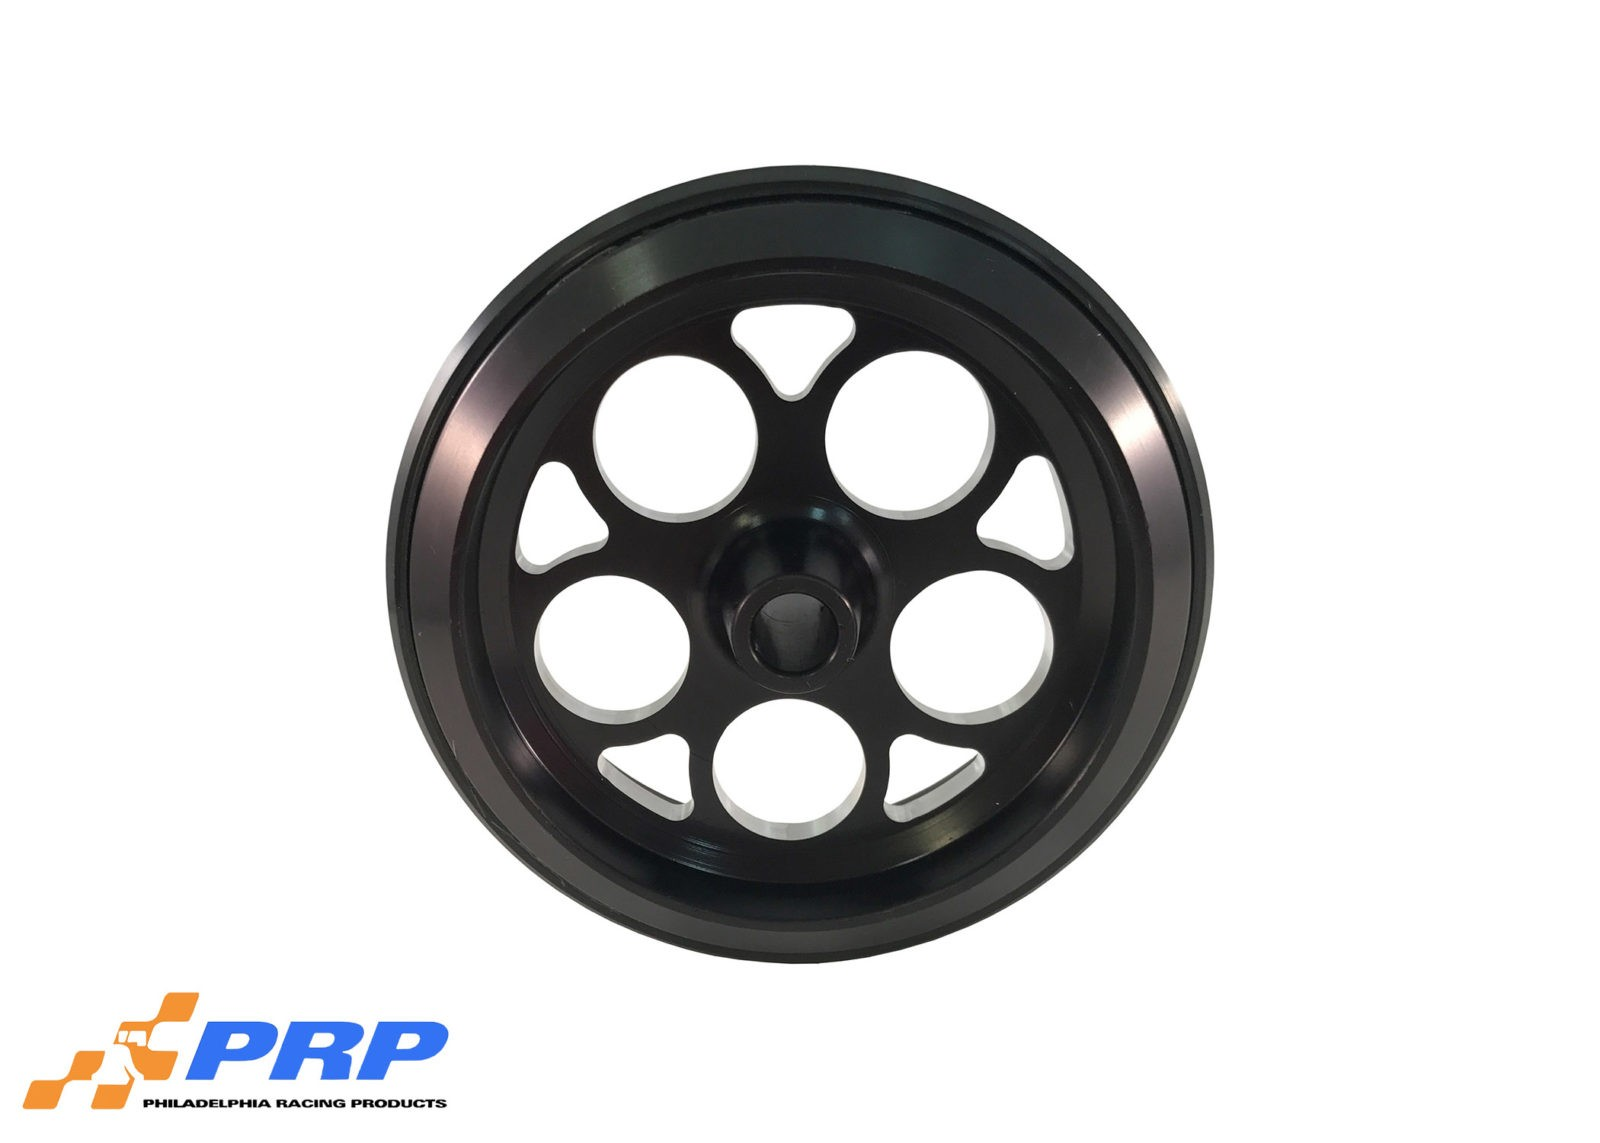 Black Anodized Hole Style made by PRP Racing Products